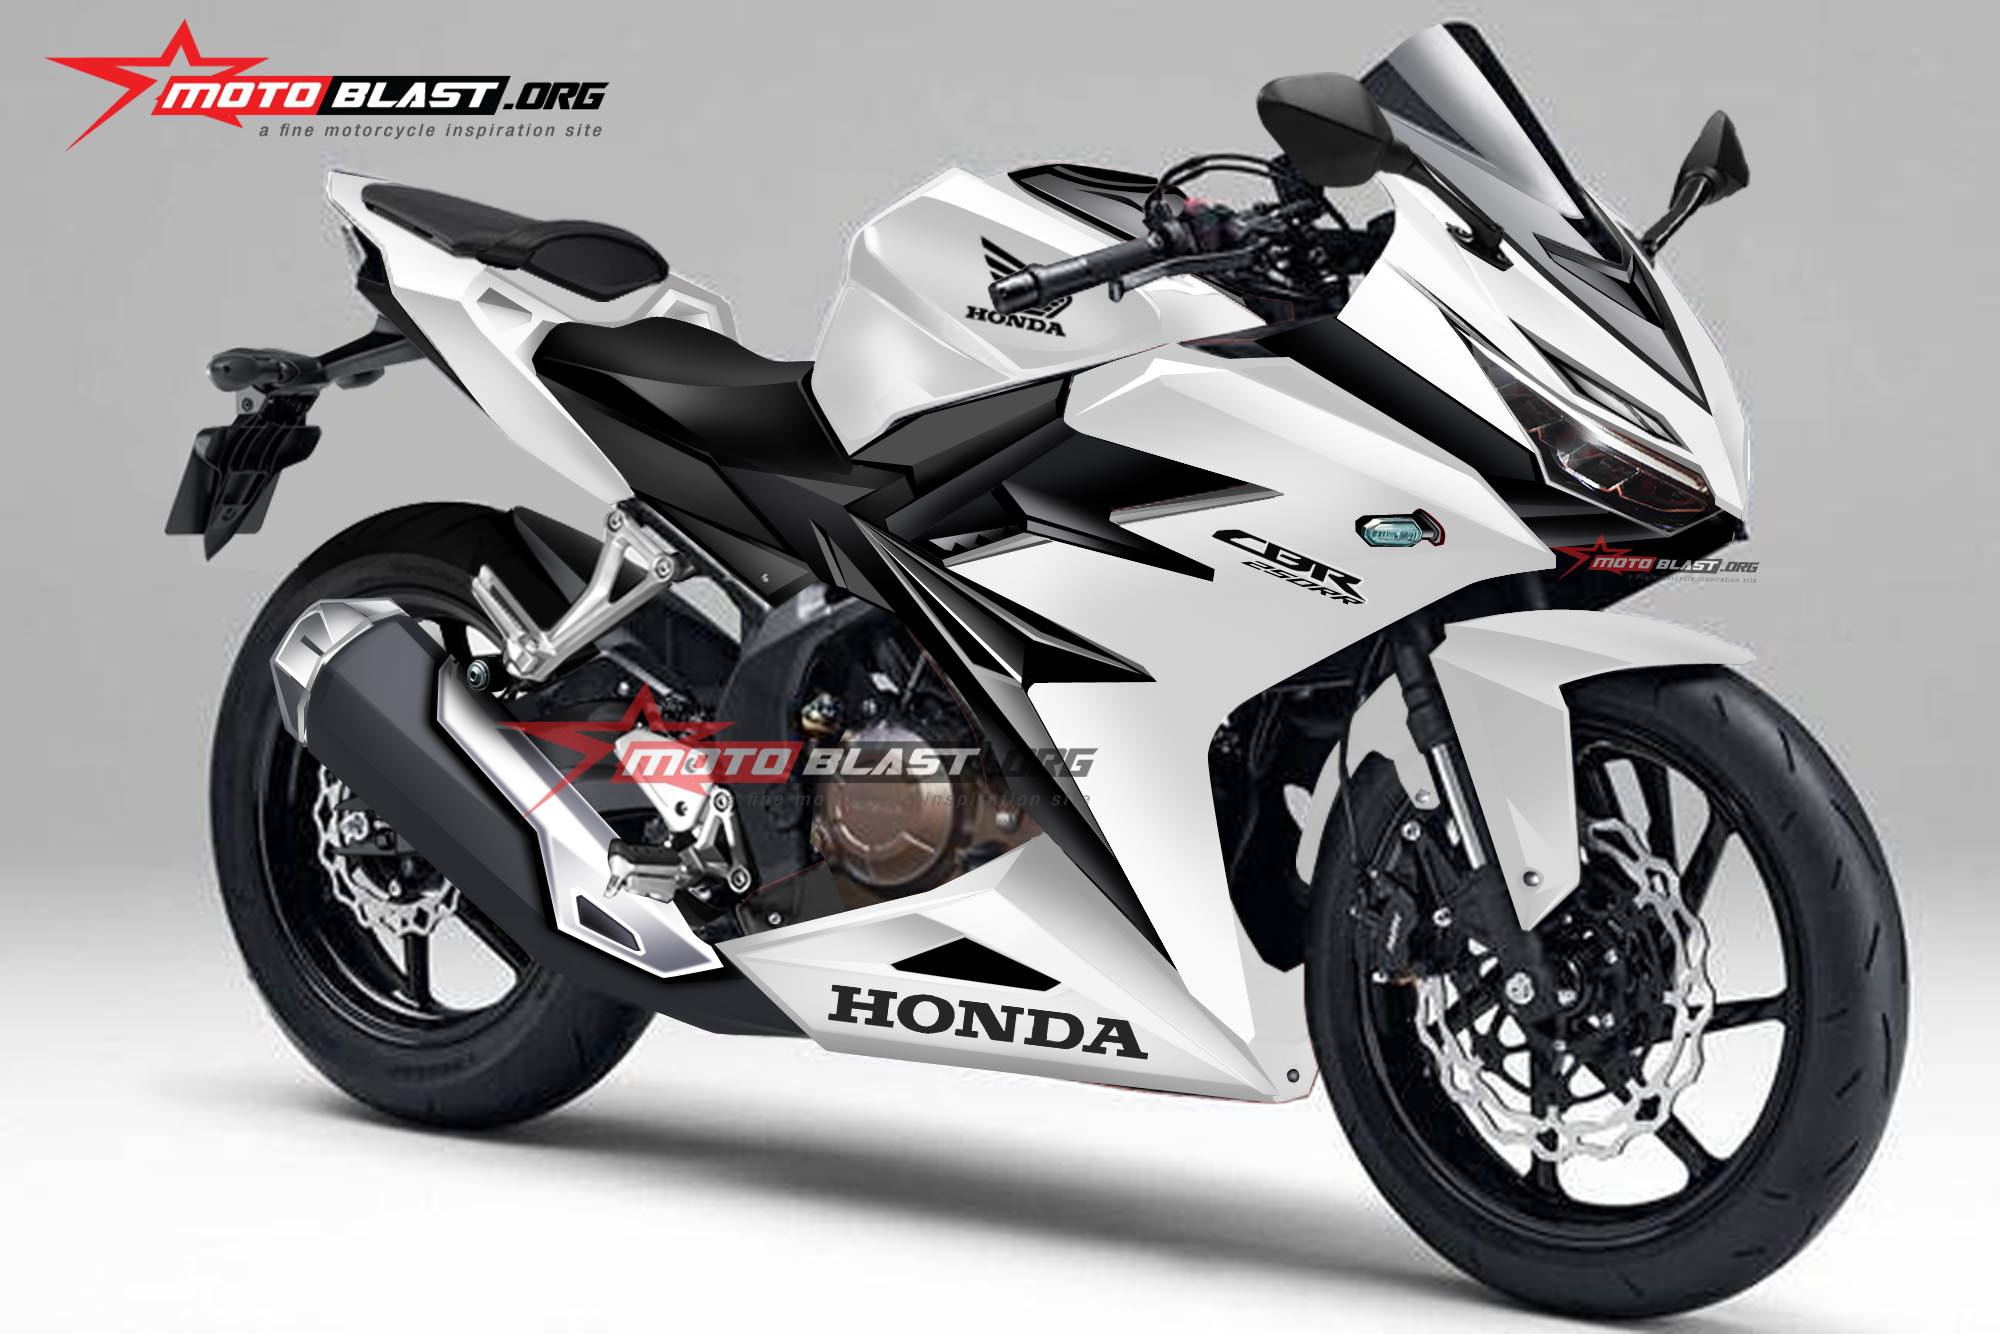 Cbr 600 Wiring Diagram Another Blog About Cbr900rr New 2017 Honda Pictures Could This Be The One F4 2005